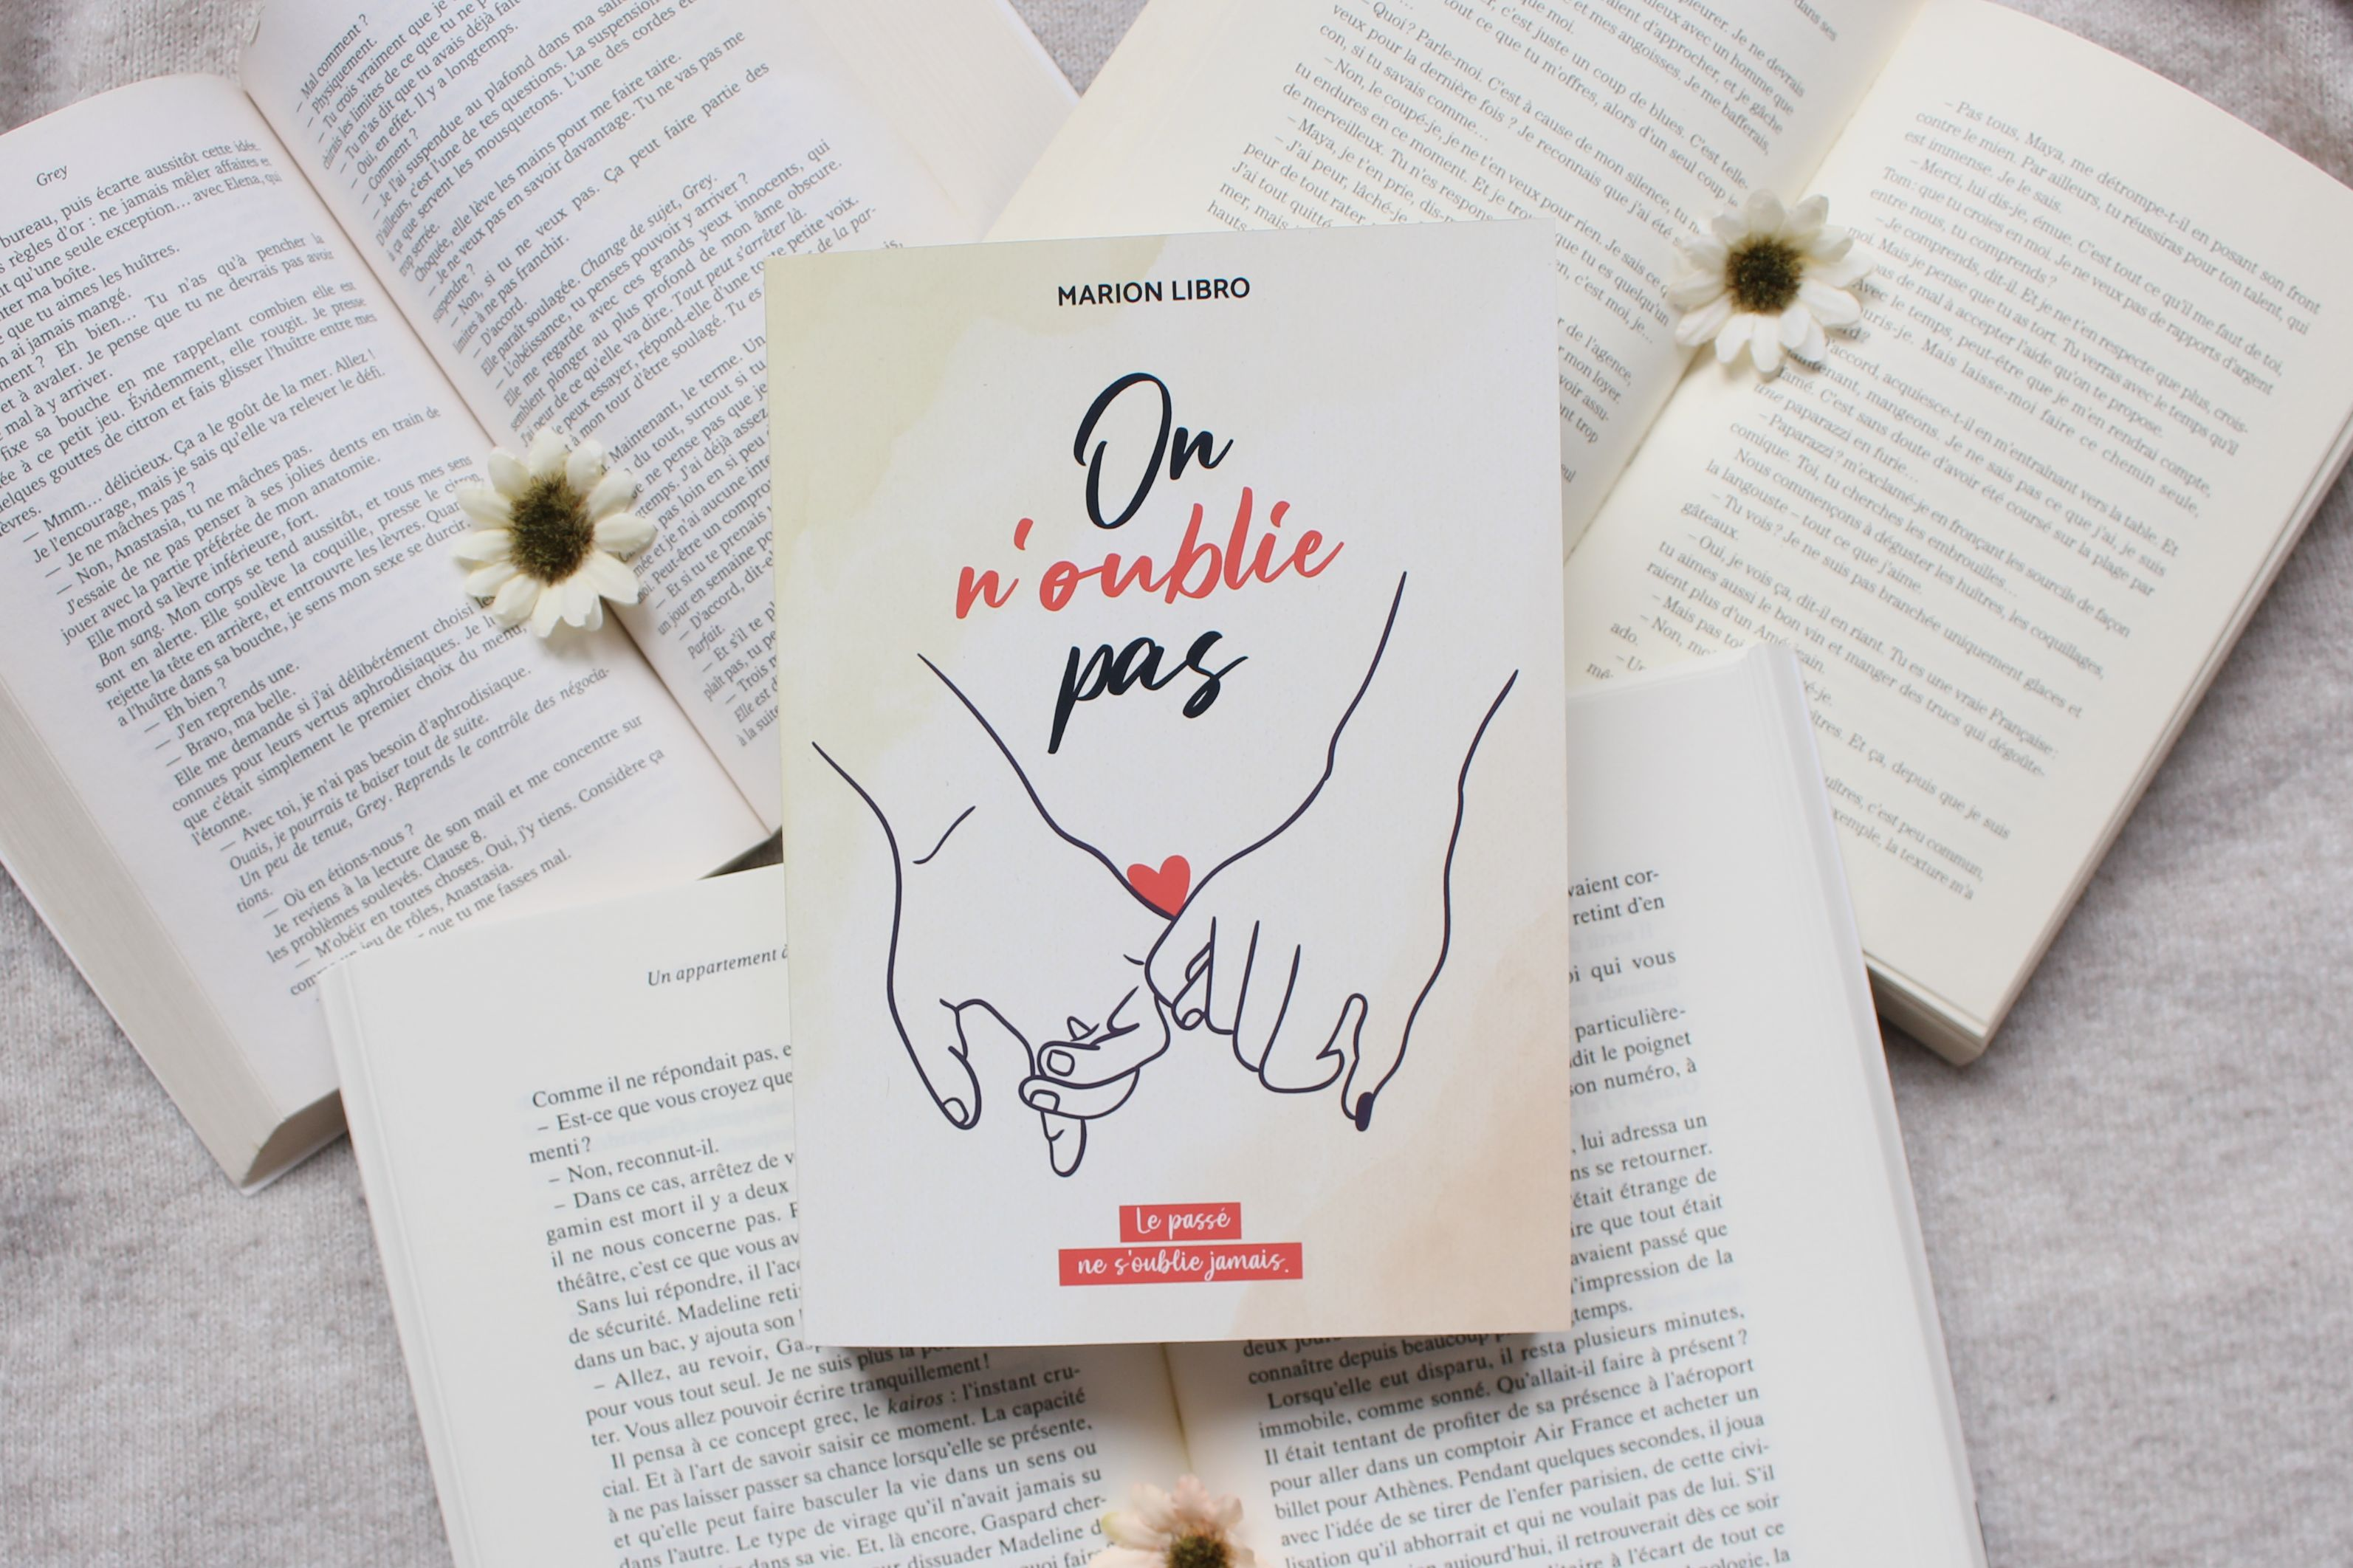 On n'oublie pas Marion Libro